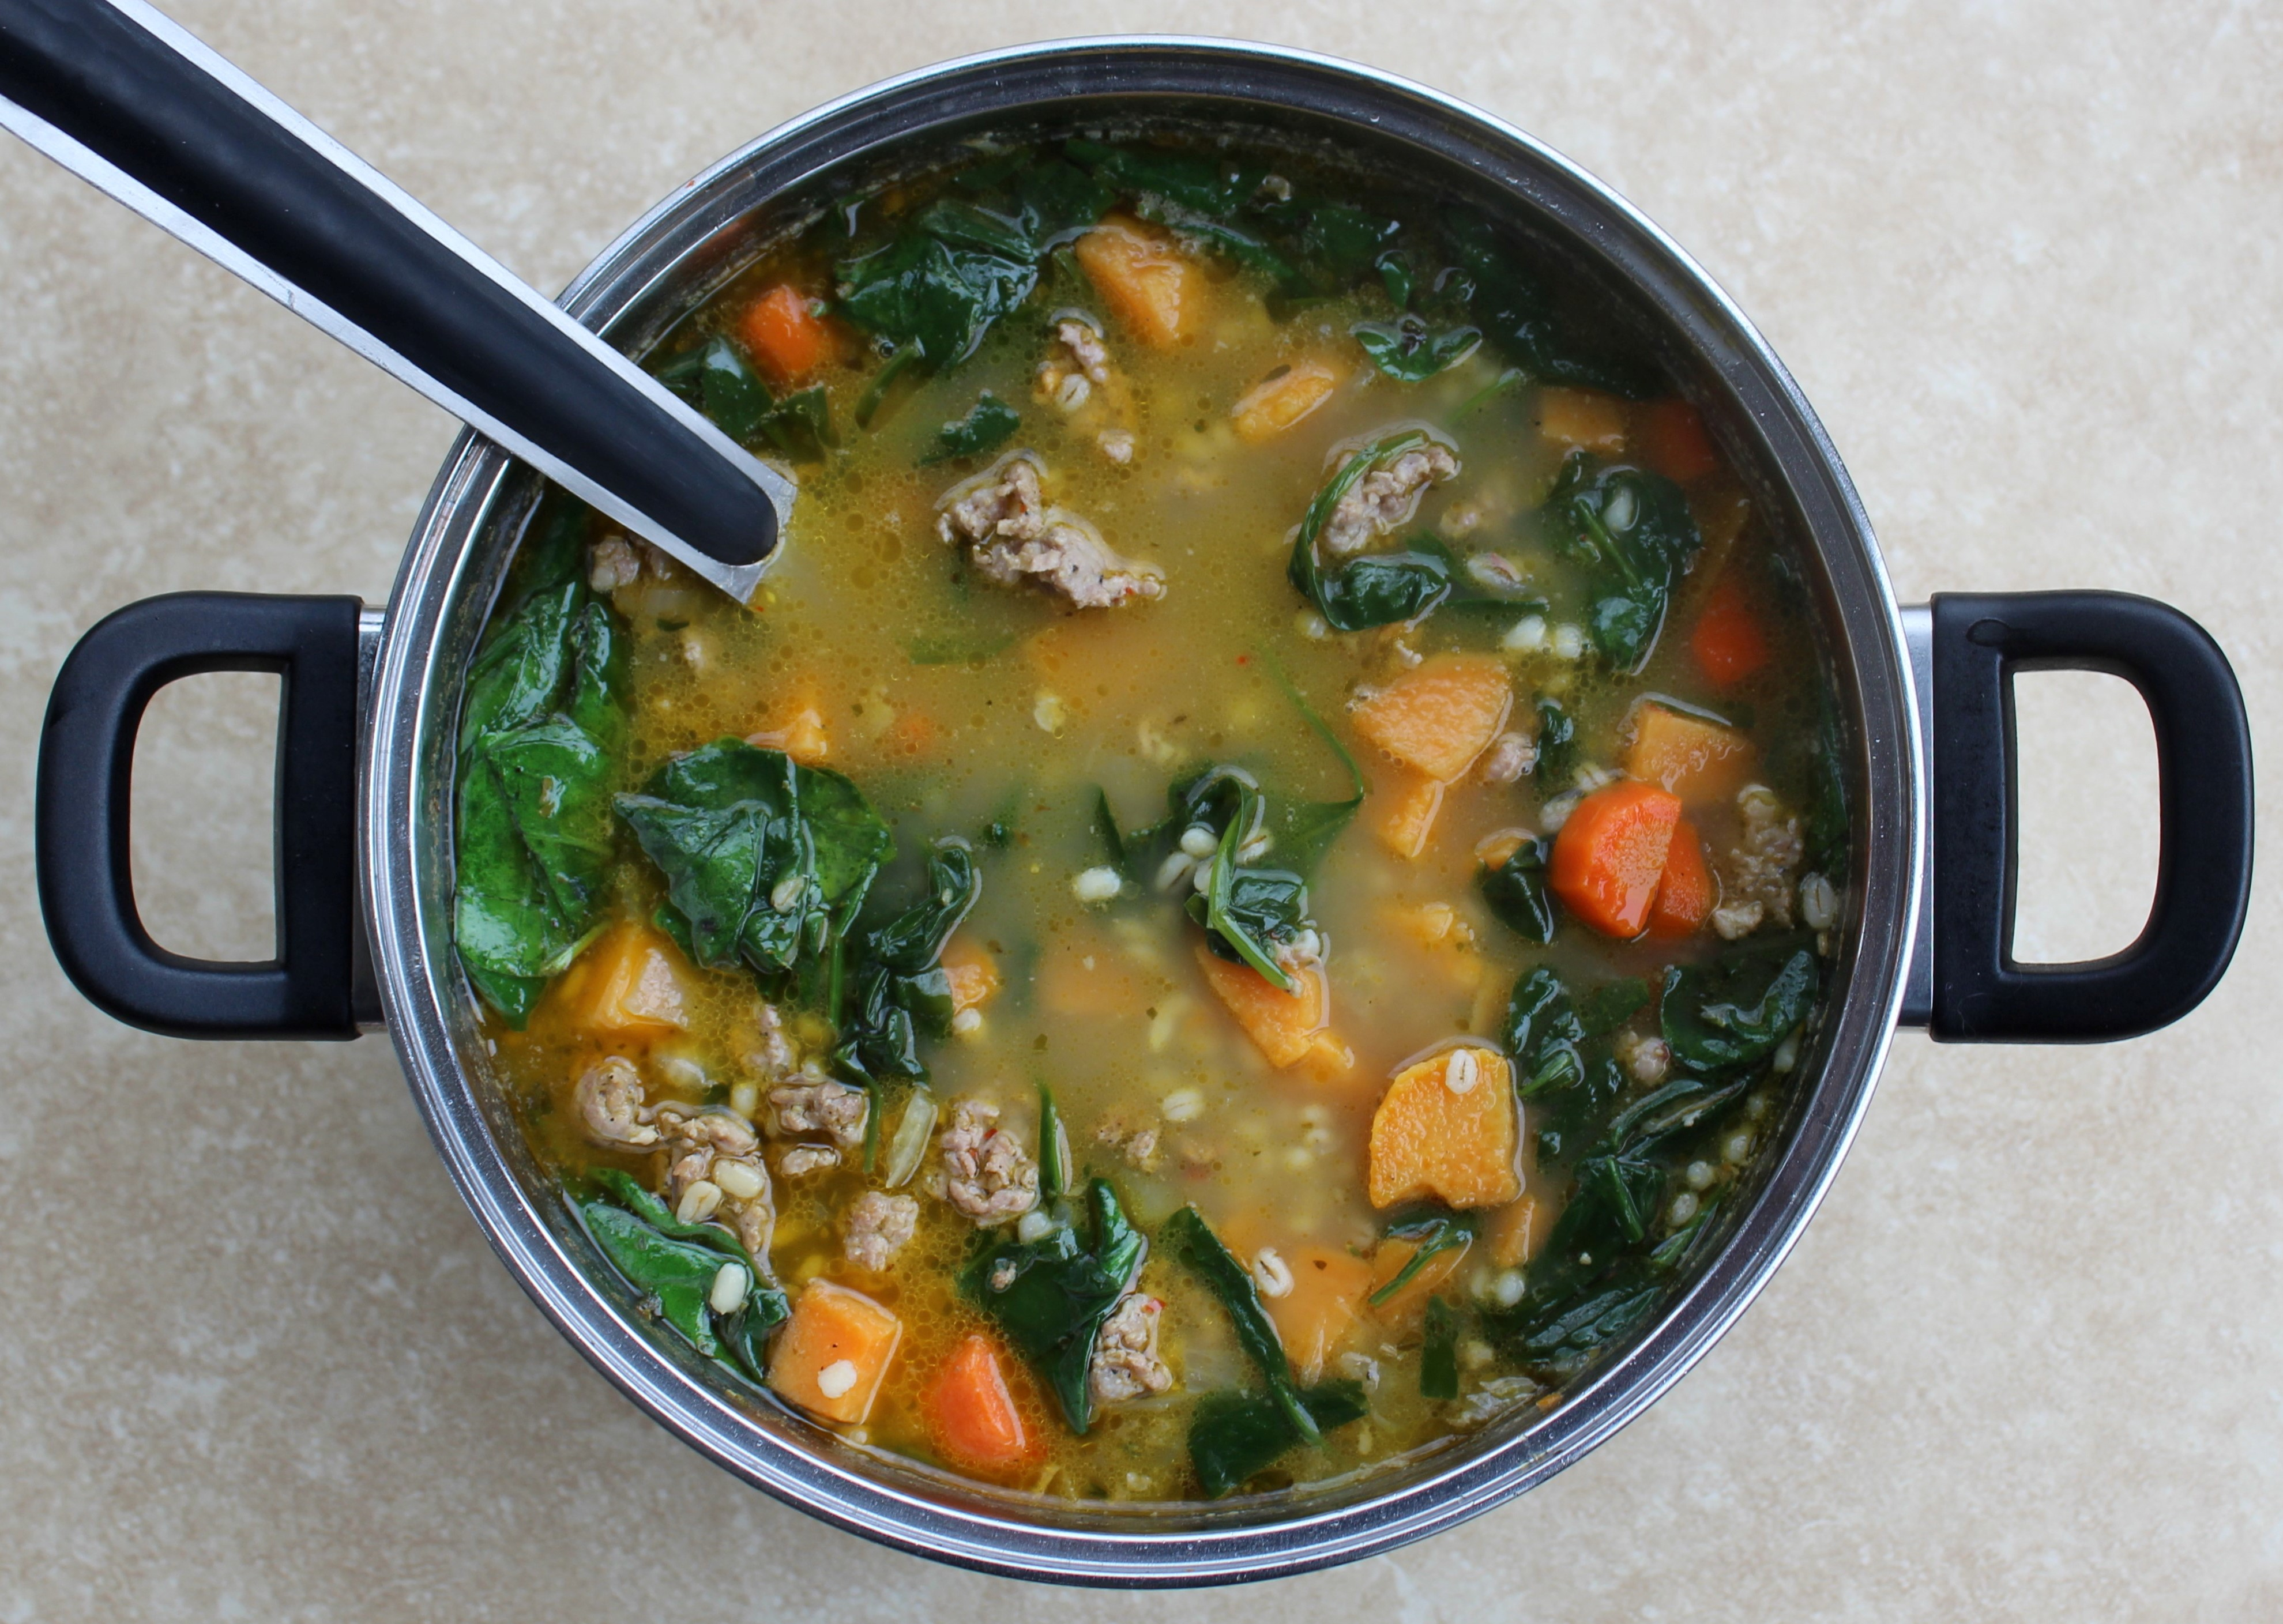 Spicy Sausage, Barley, and Veggie Soup 2